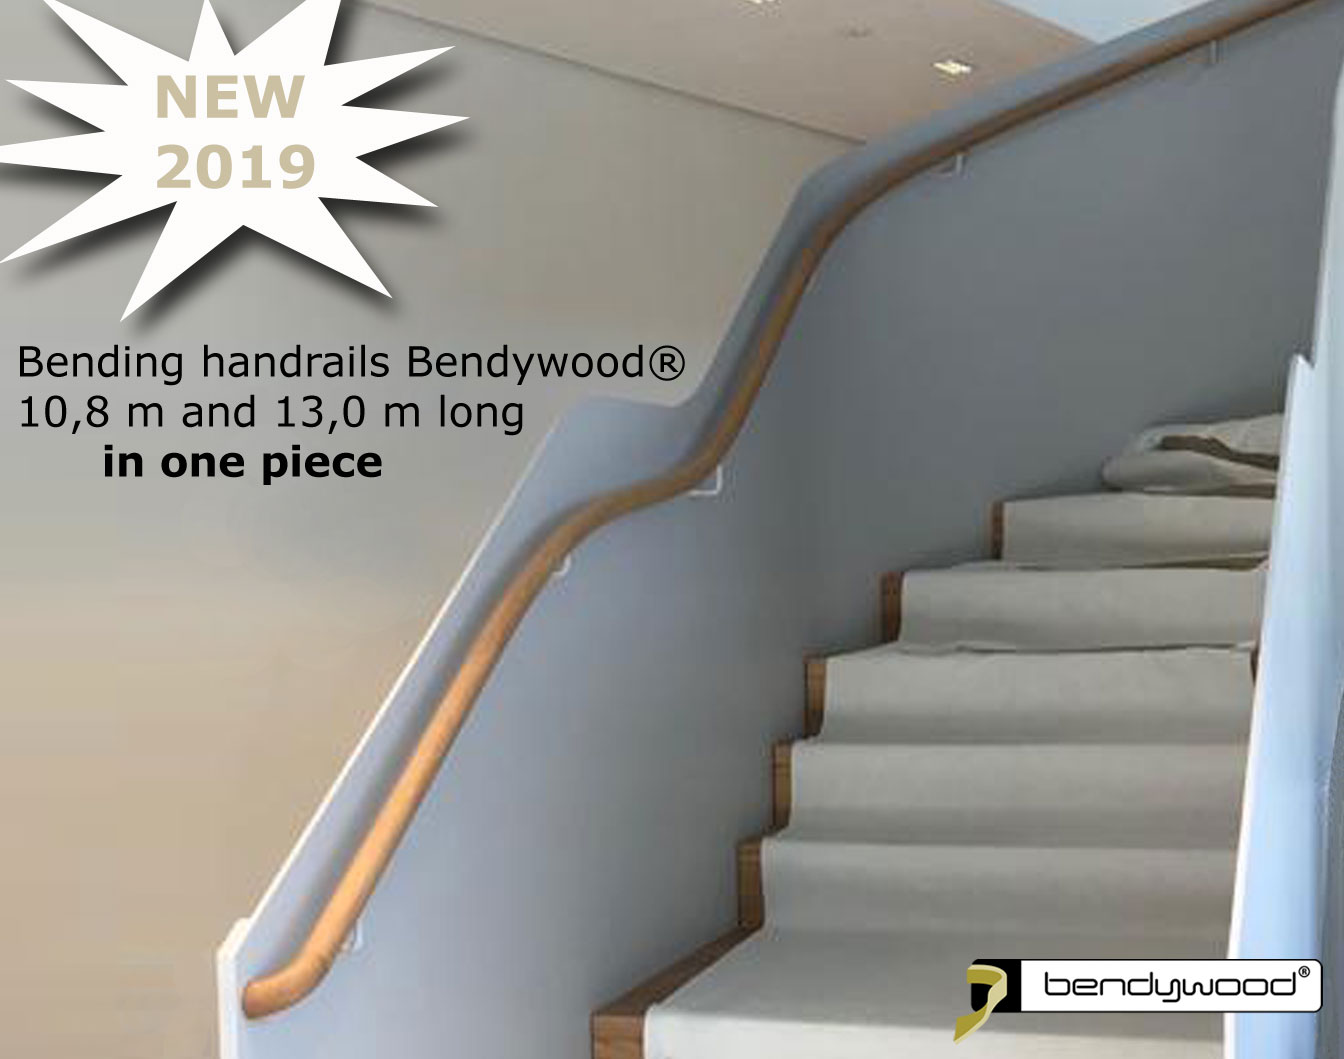 Bending wood Bendywood® - bending handrails up to 13 m long in one piece